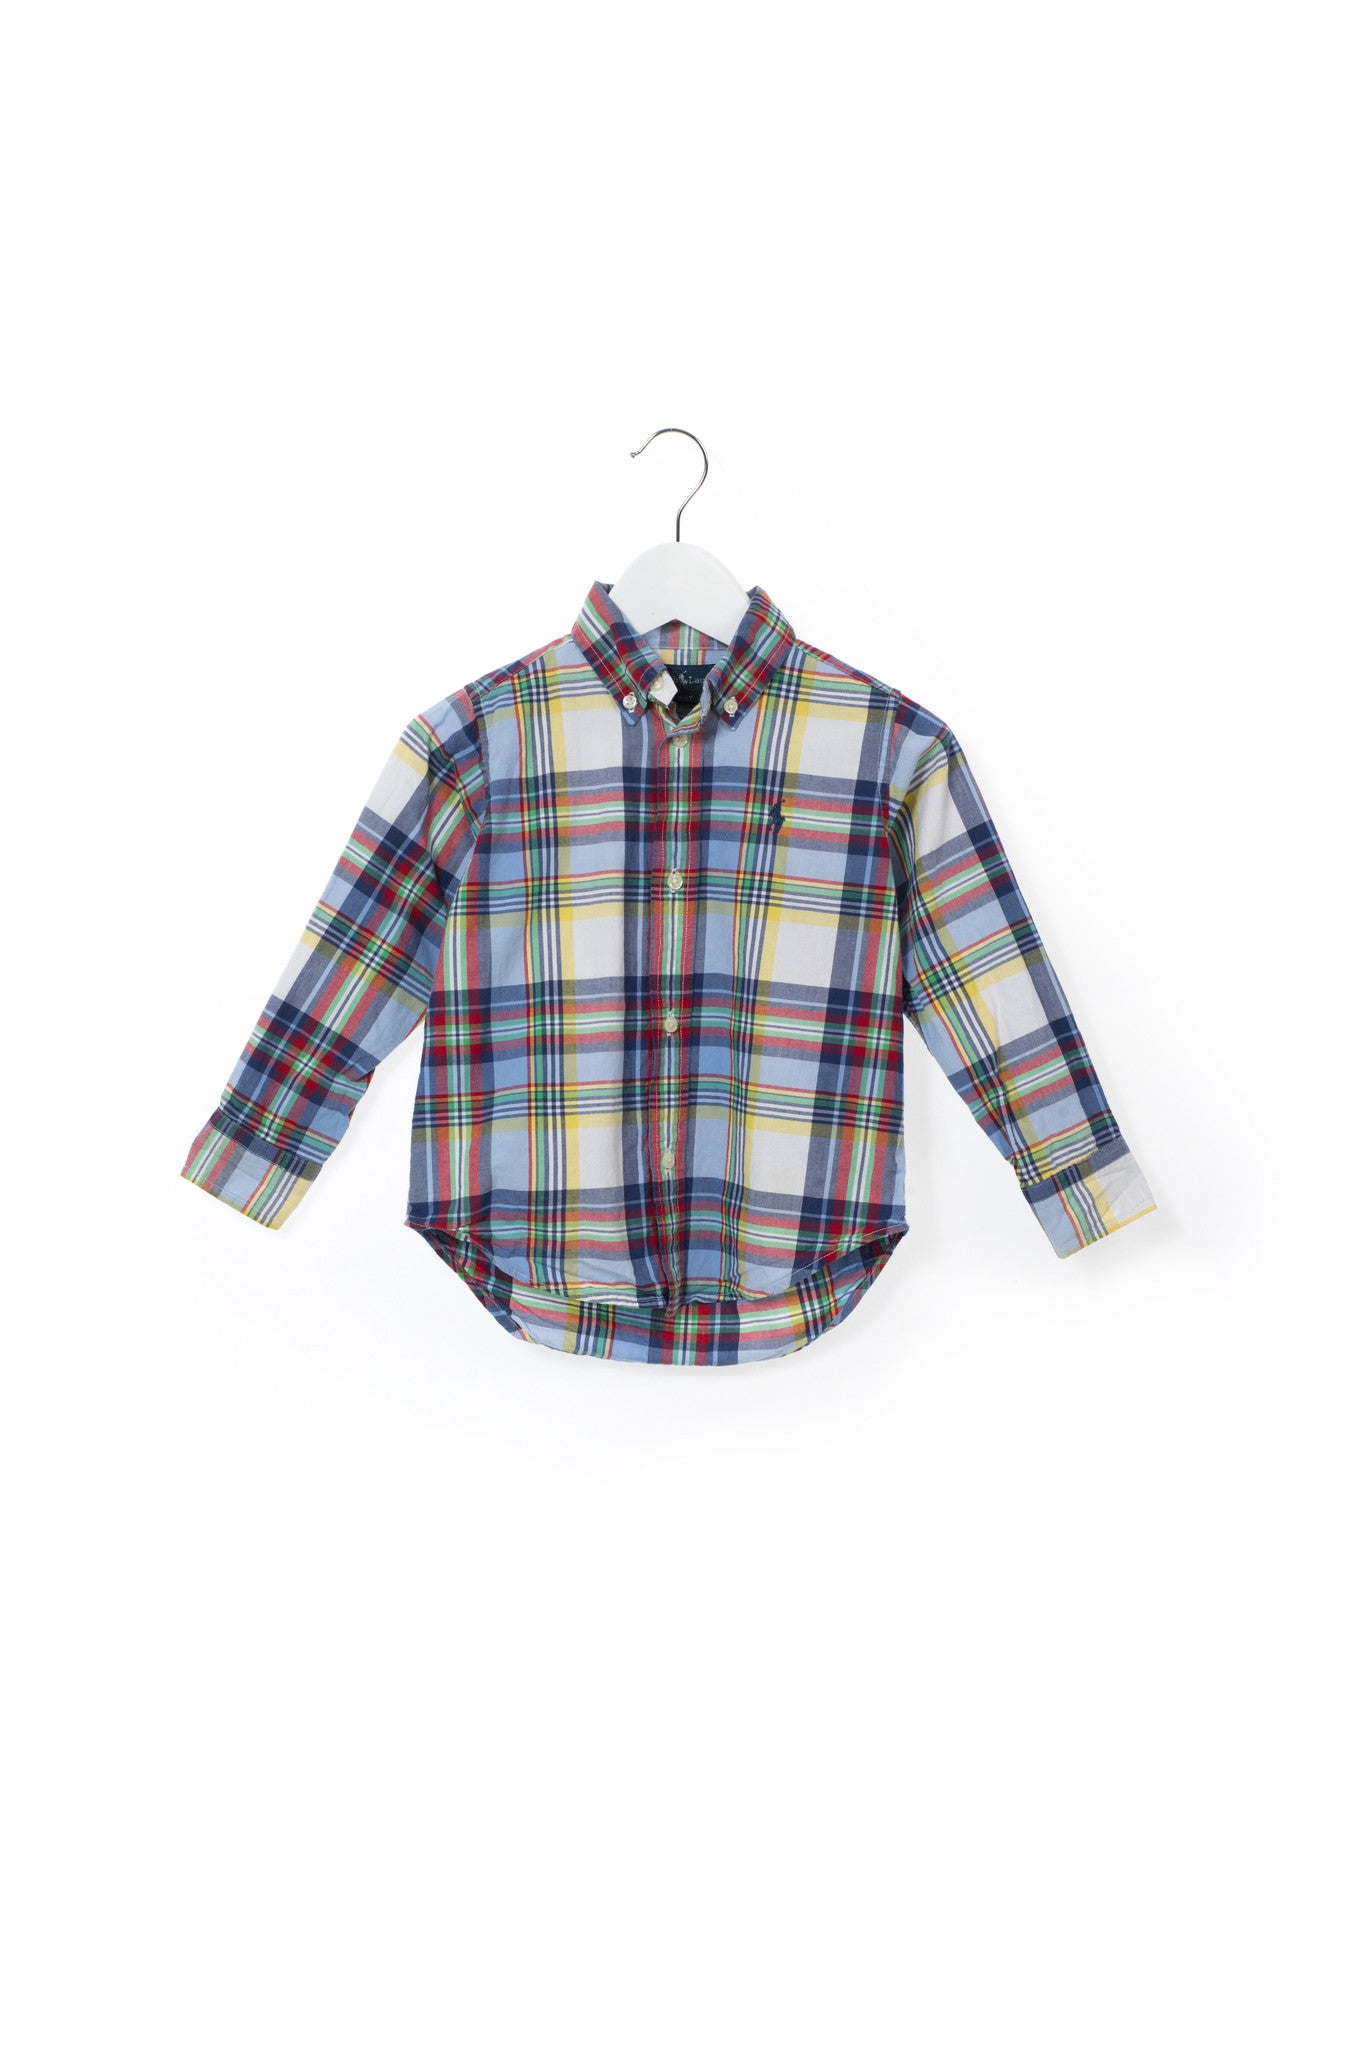 Shirt 3T, Ralph Lauren at Retykle - Online Baby & Kids Clothing Up to 90% Off